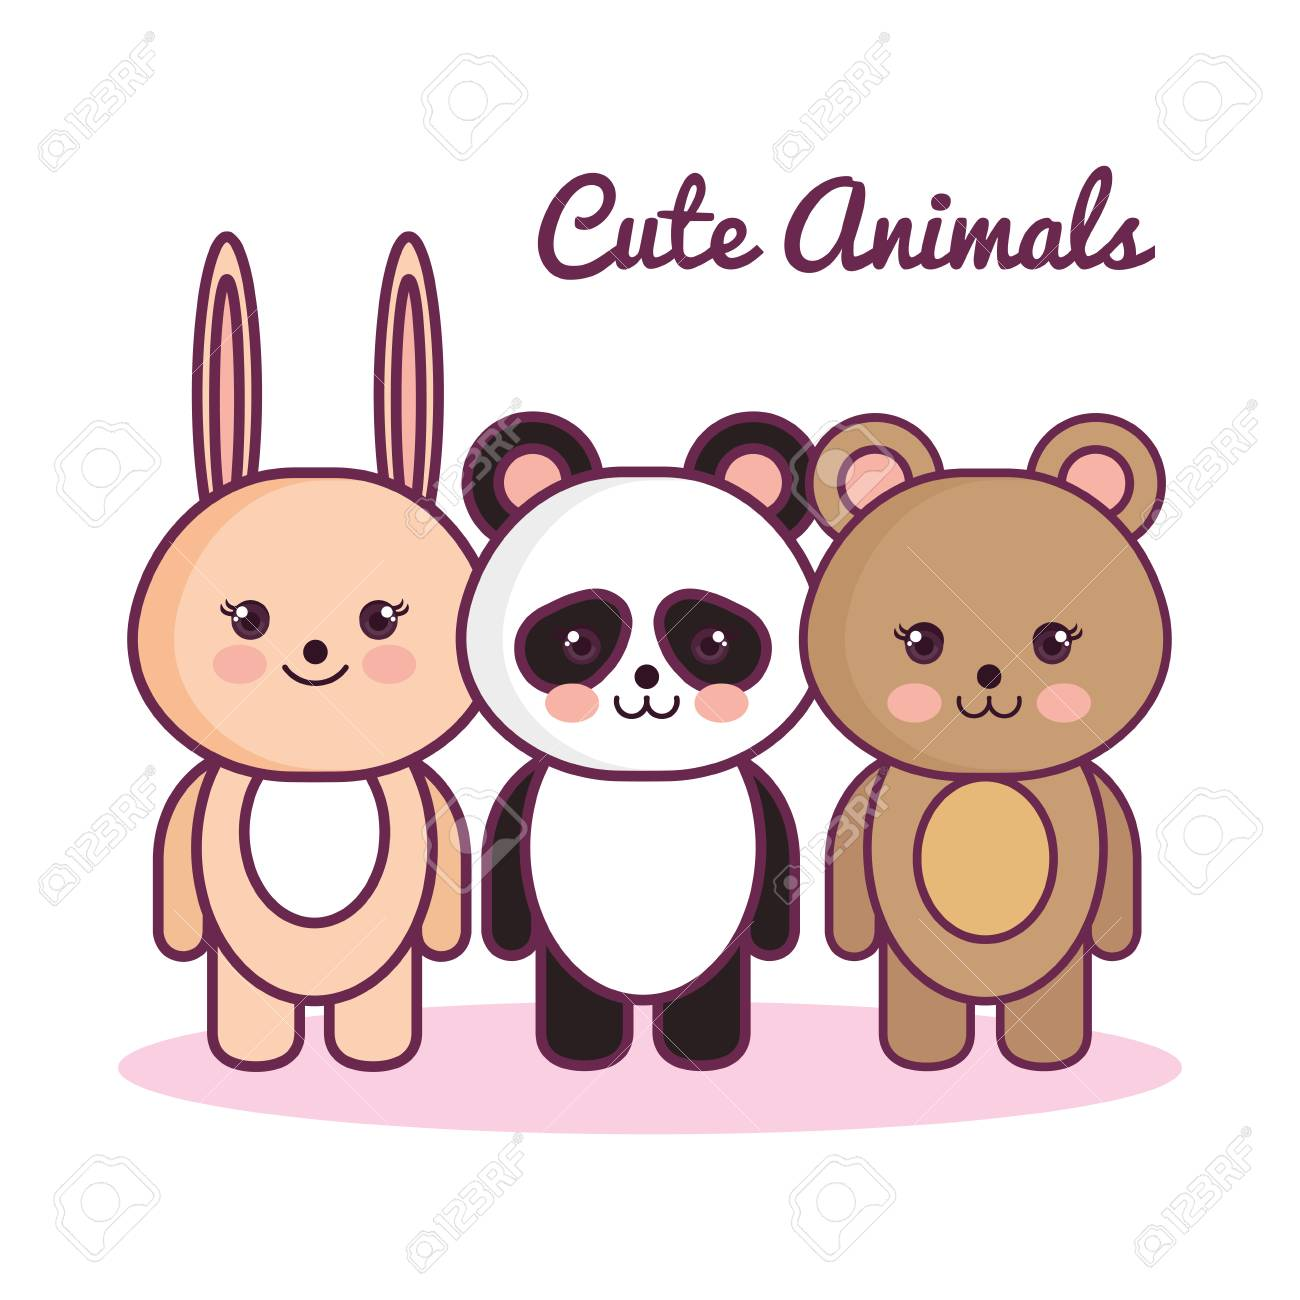 Image of: Drawings Kawaii Animals With Cute Animals Sign Over White Background Vector Illustration Stock Vector 123rfcom Kawaii Animals With Cute Animals Sign Over White Background